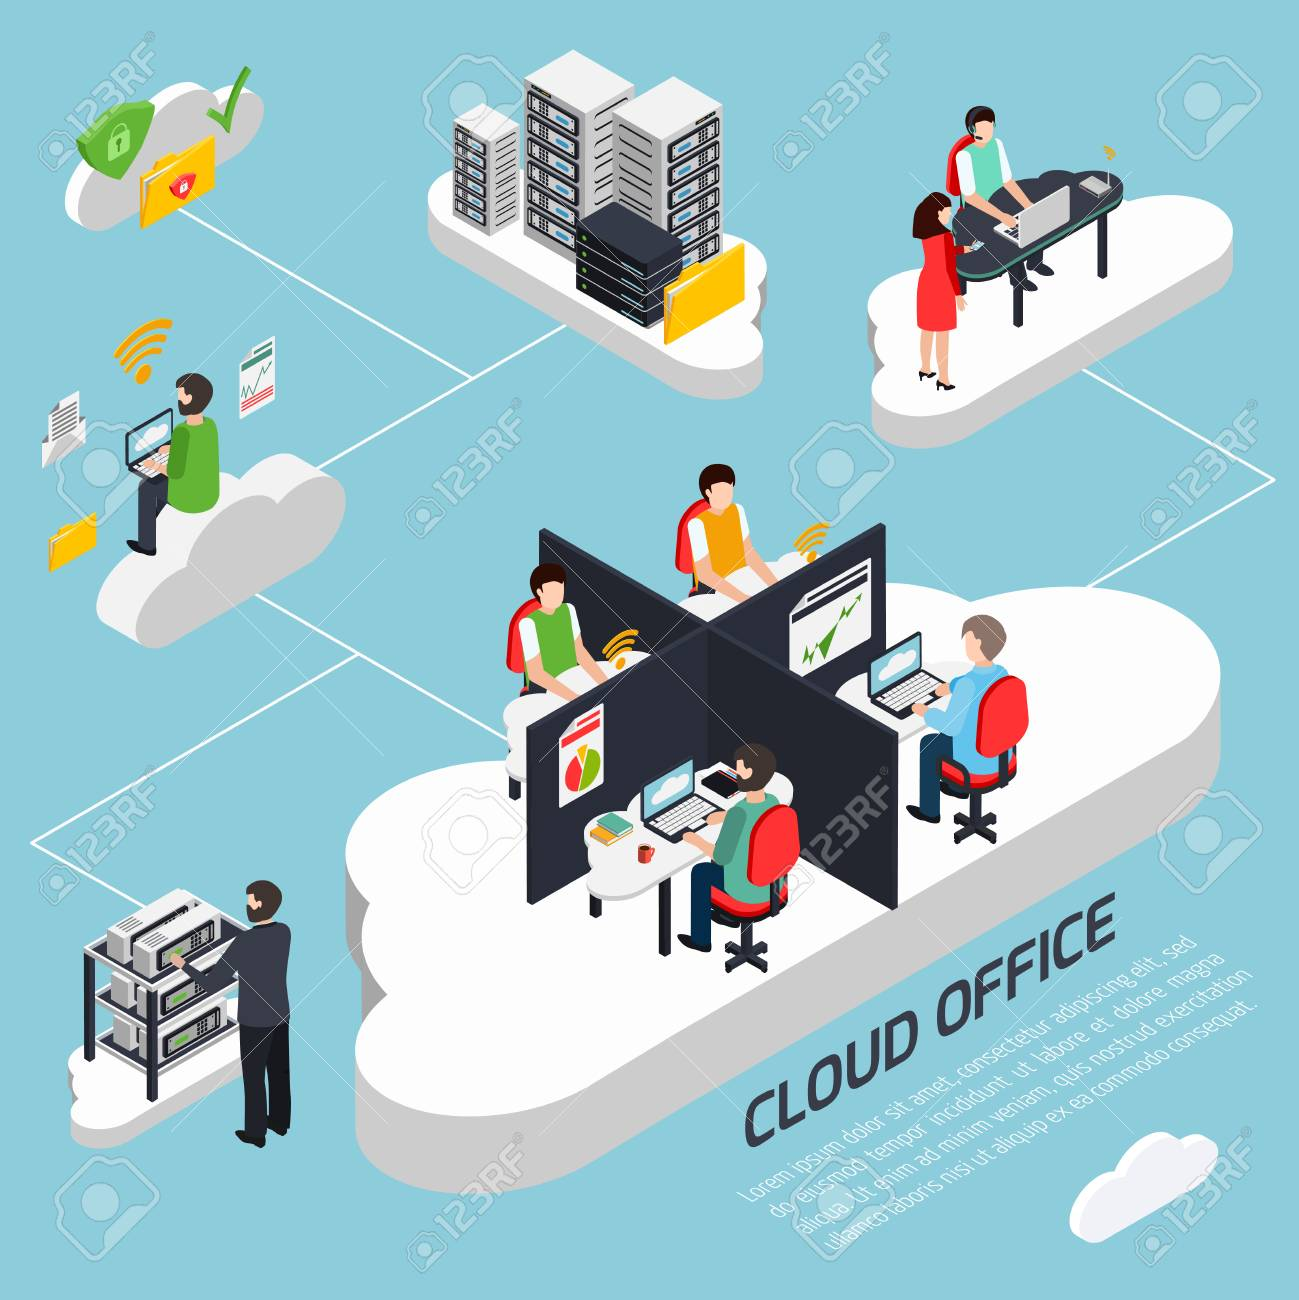 Cloud office isometric background with data protection and security symbols vector illustration - 91822021